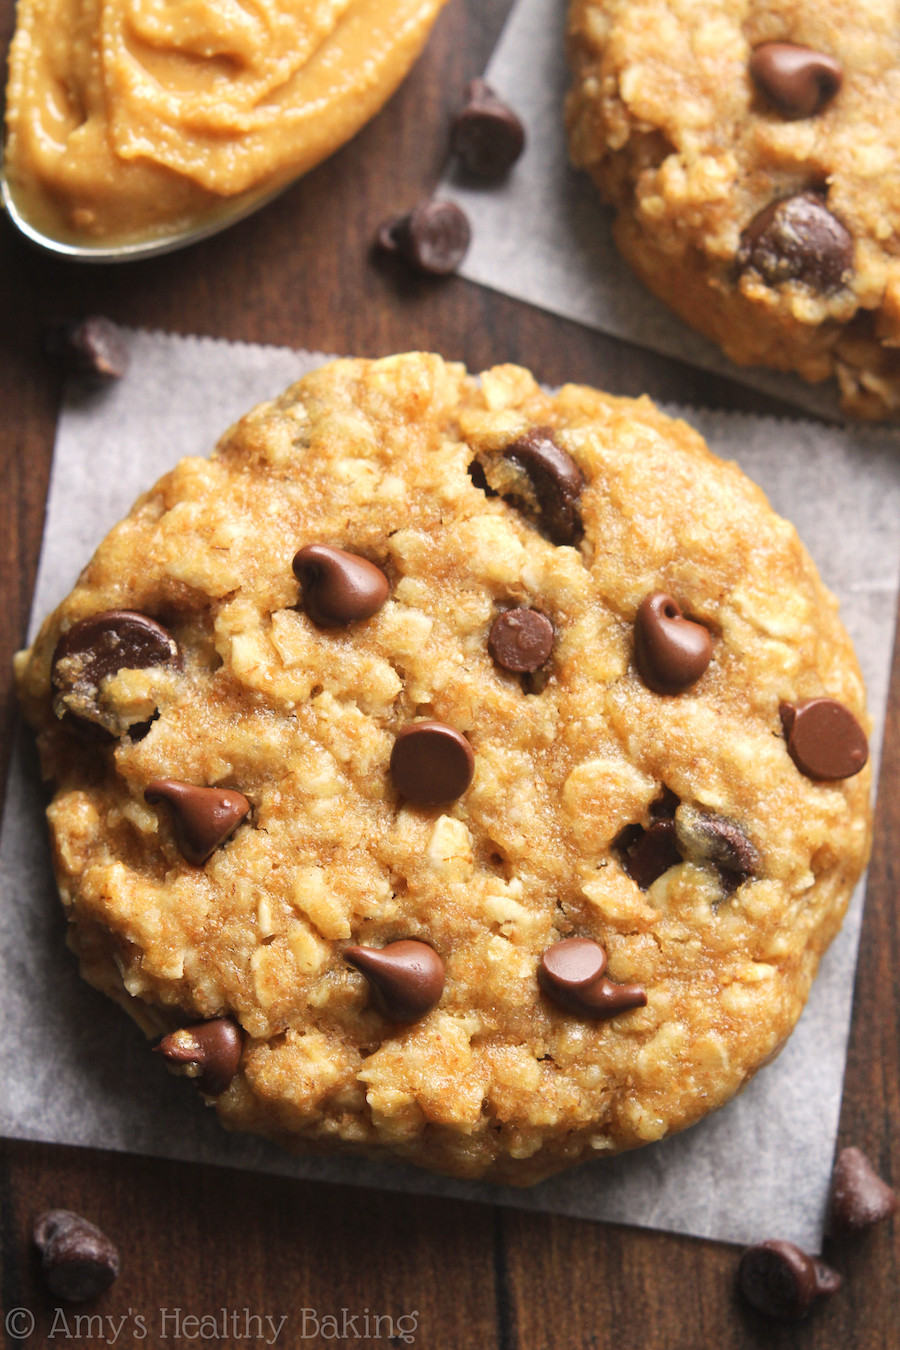 Peanut Butter Chocolate Chip Oatmeal Cookies  Chocolate Chip Peanut Butter Oatmeal Cookies Recipe Video